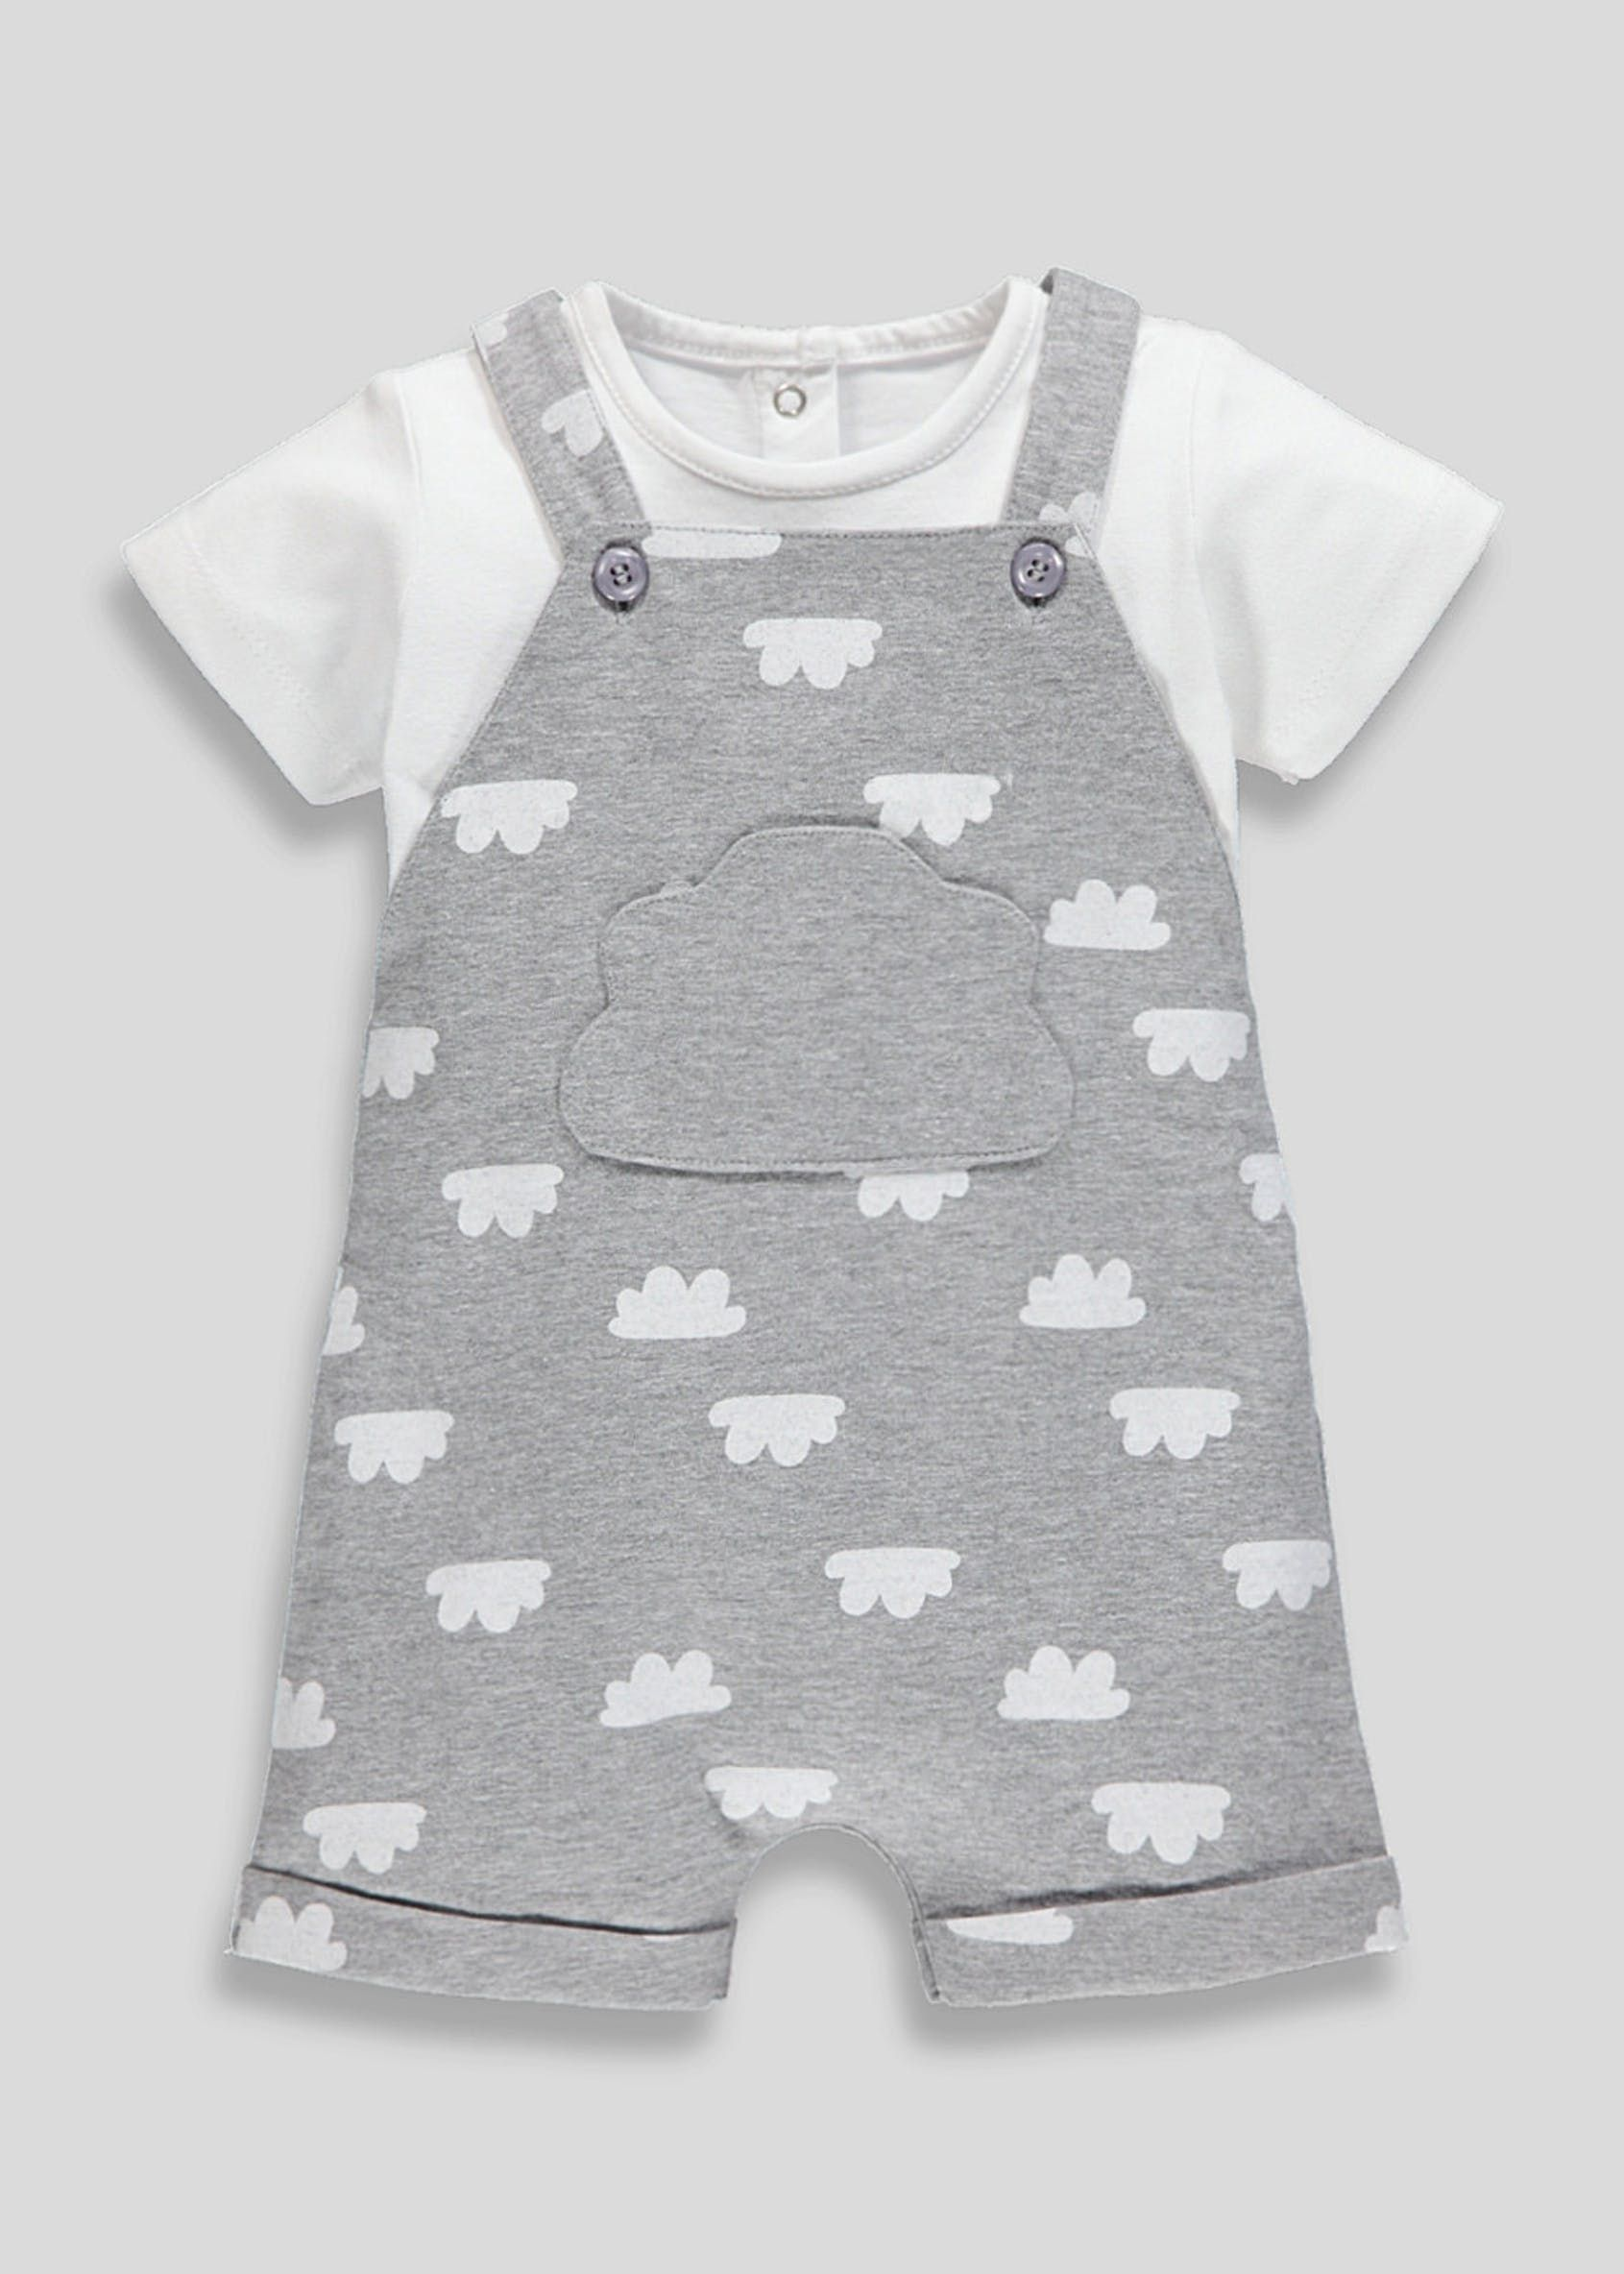 top design largest selection of large assortment Unisex Cloud Romper & T-Shirt Set (Newborn-18mths) – Grey ...